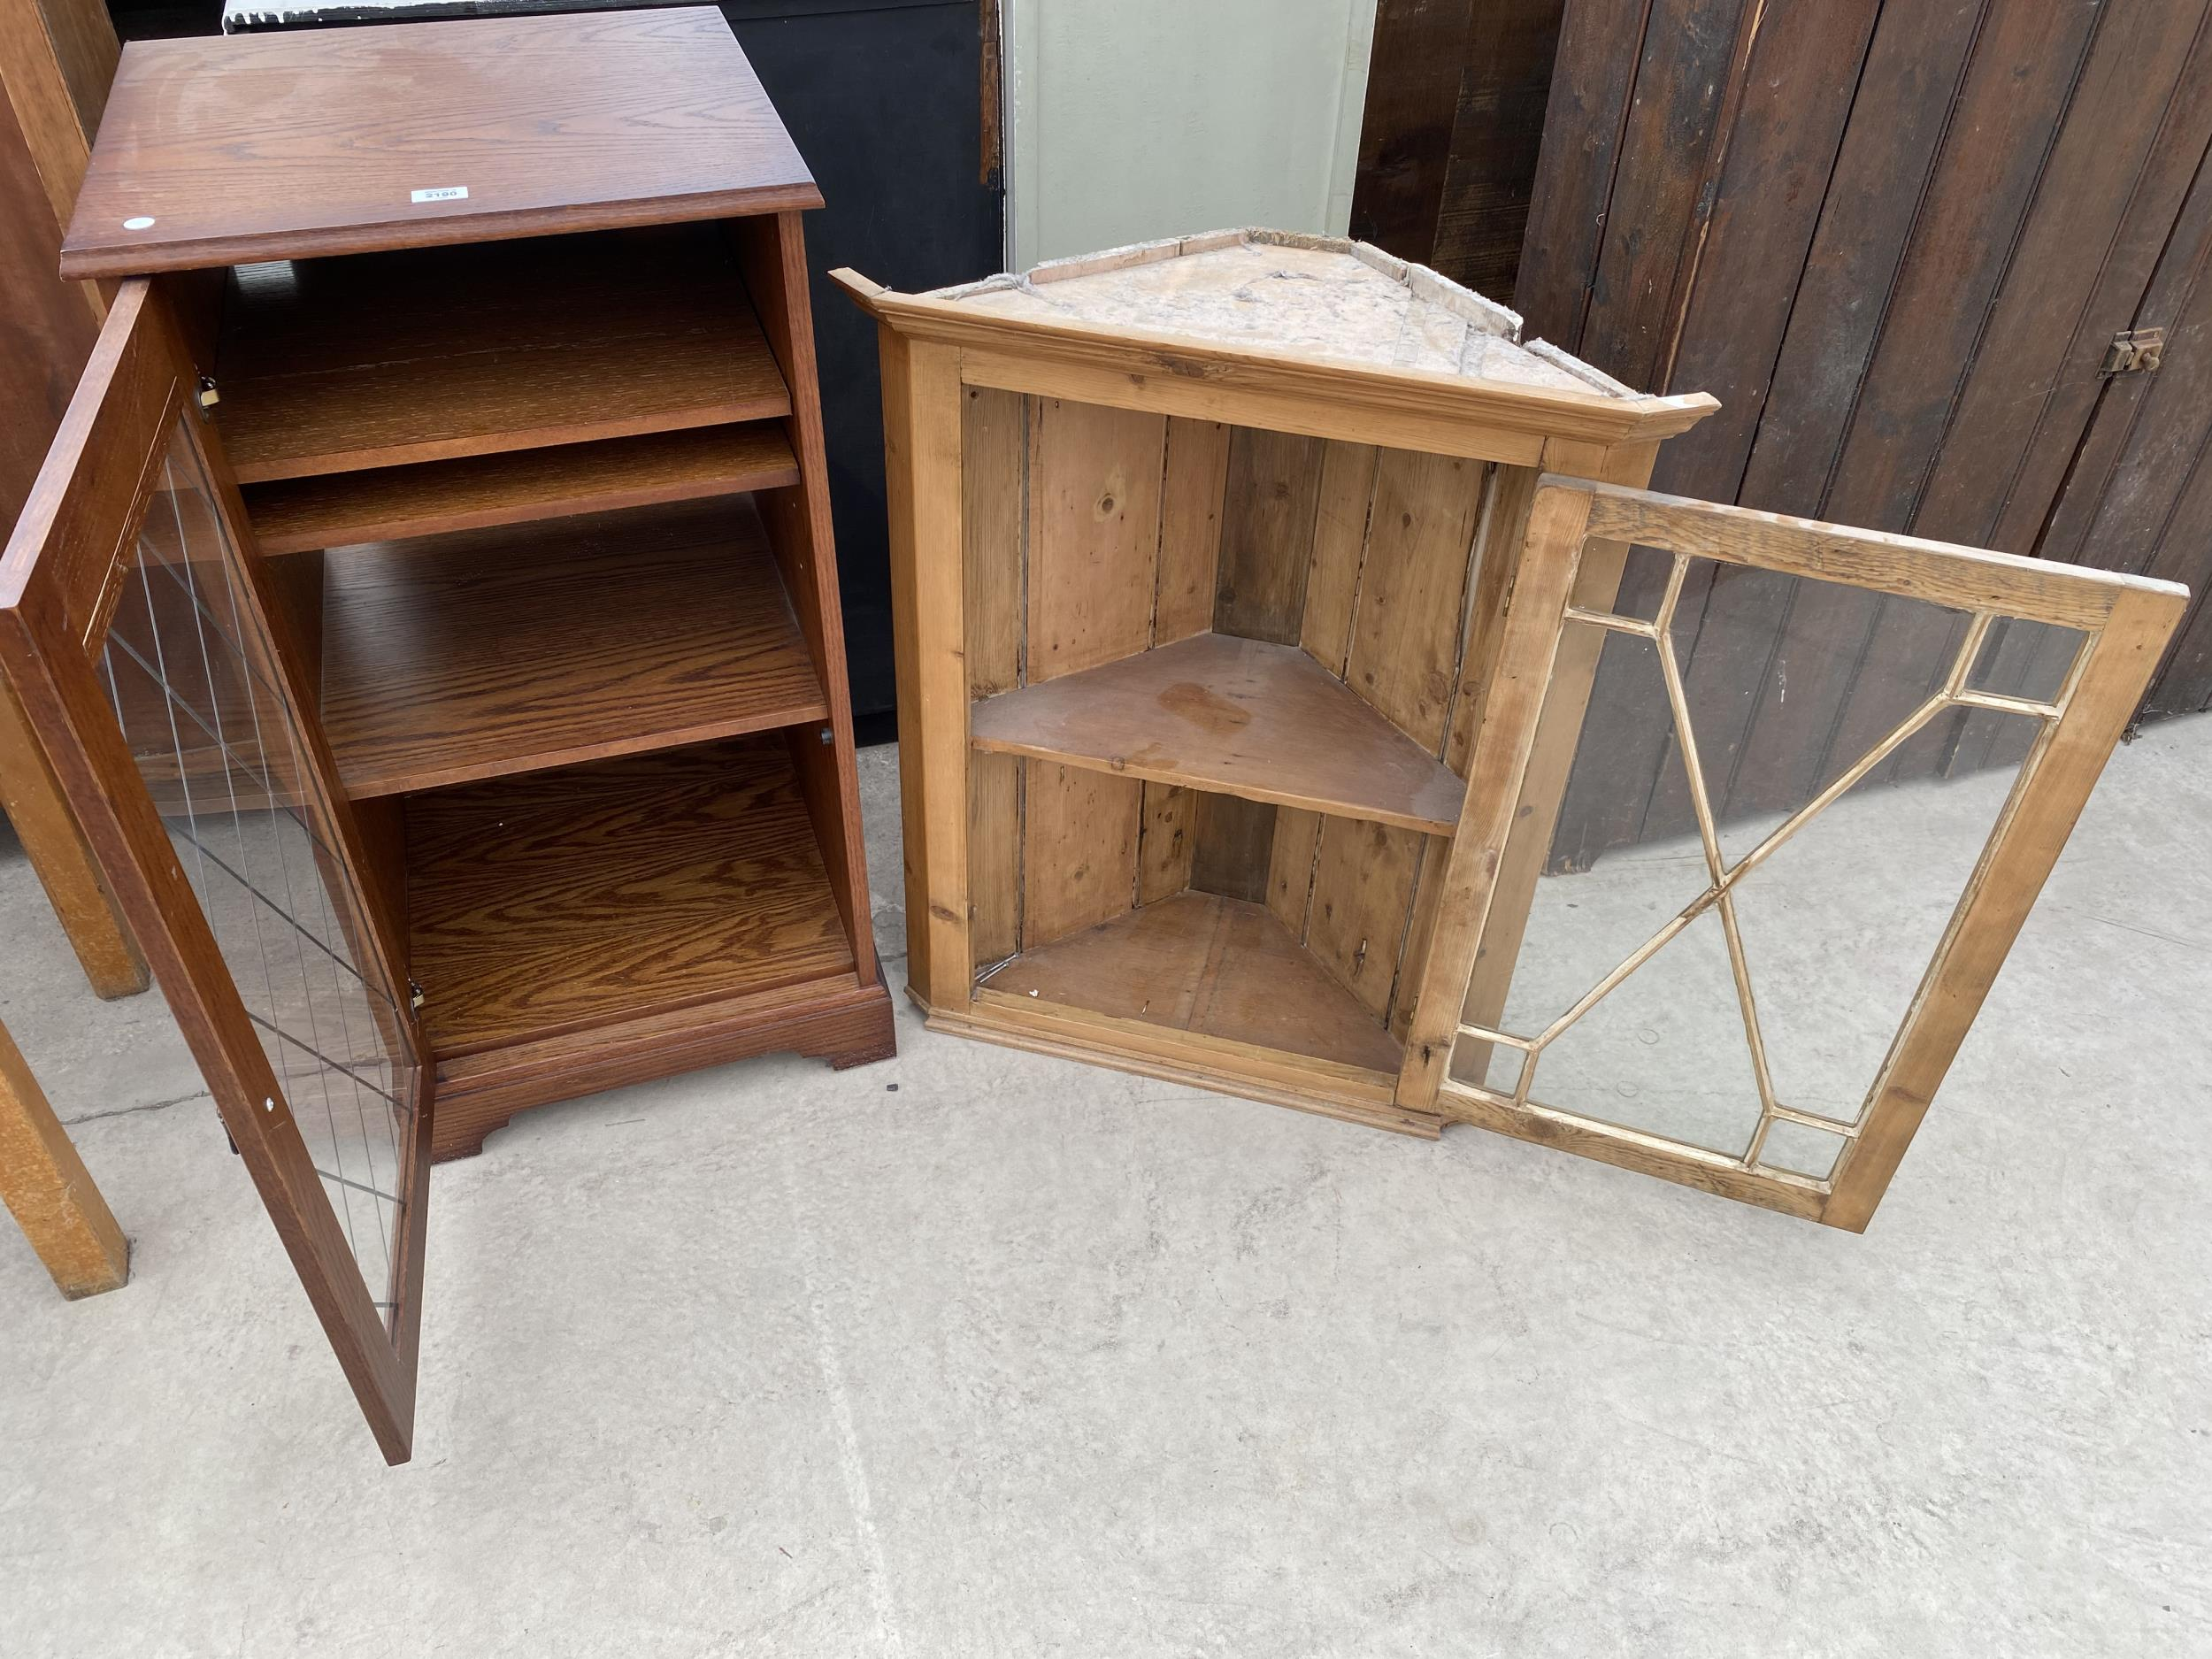 A PINE ASTRAGAL GLAZED CORNER CUPBOARD AND AN OAK STEREO CABINET - Image 2 of 2